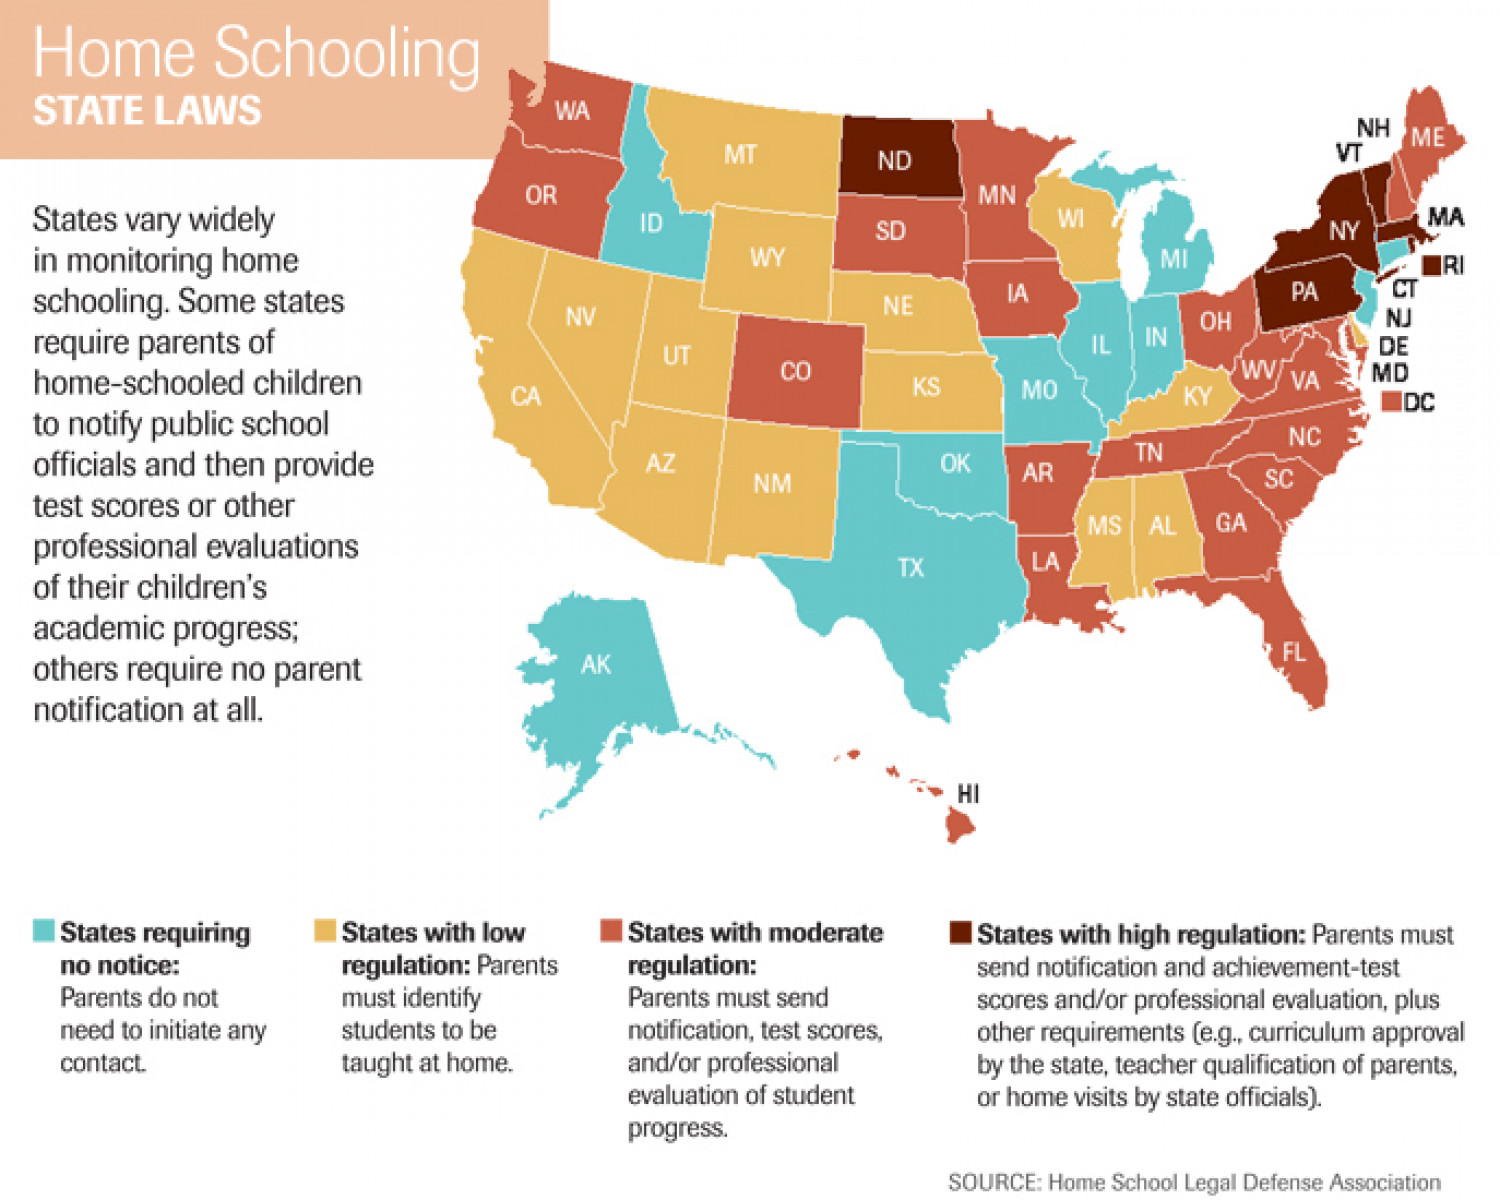 Home Schooling: State Laws Infographic